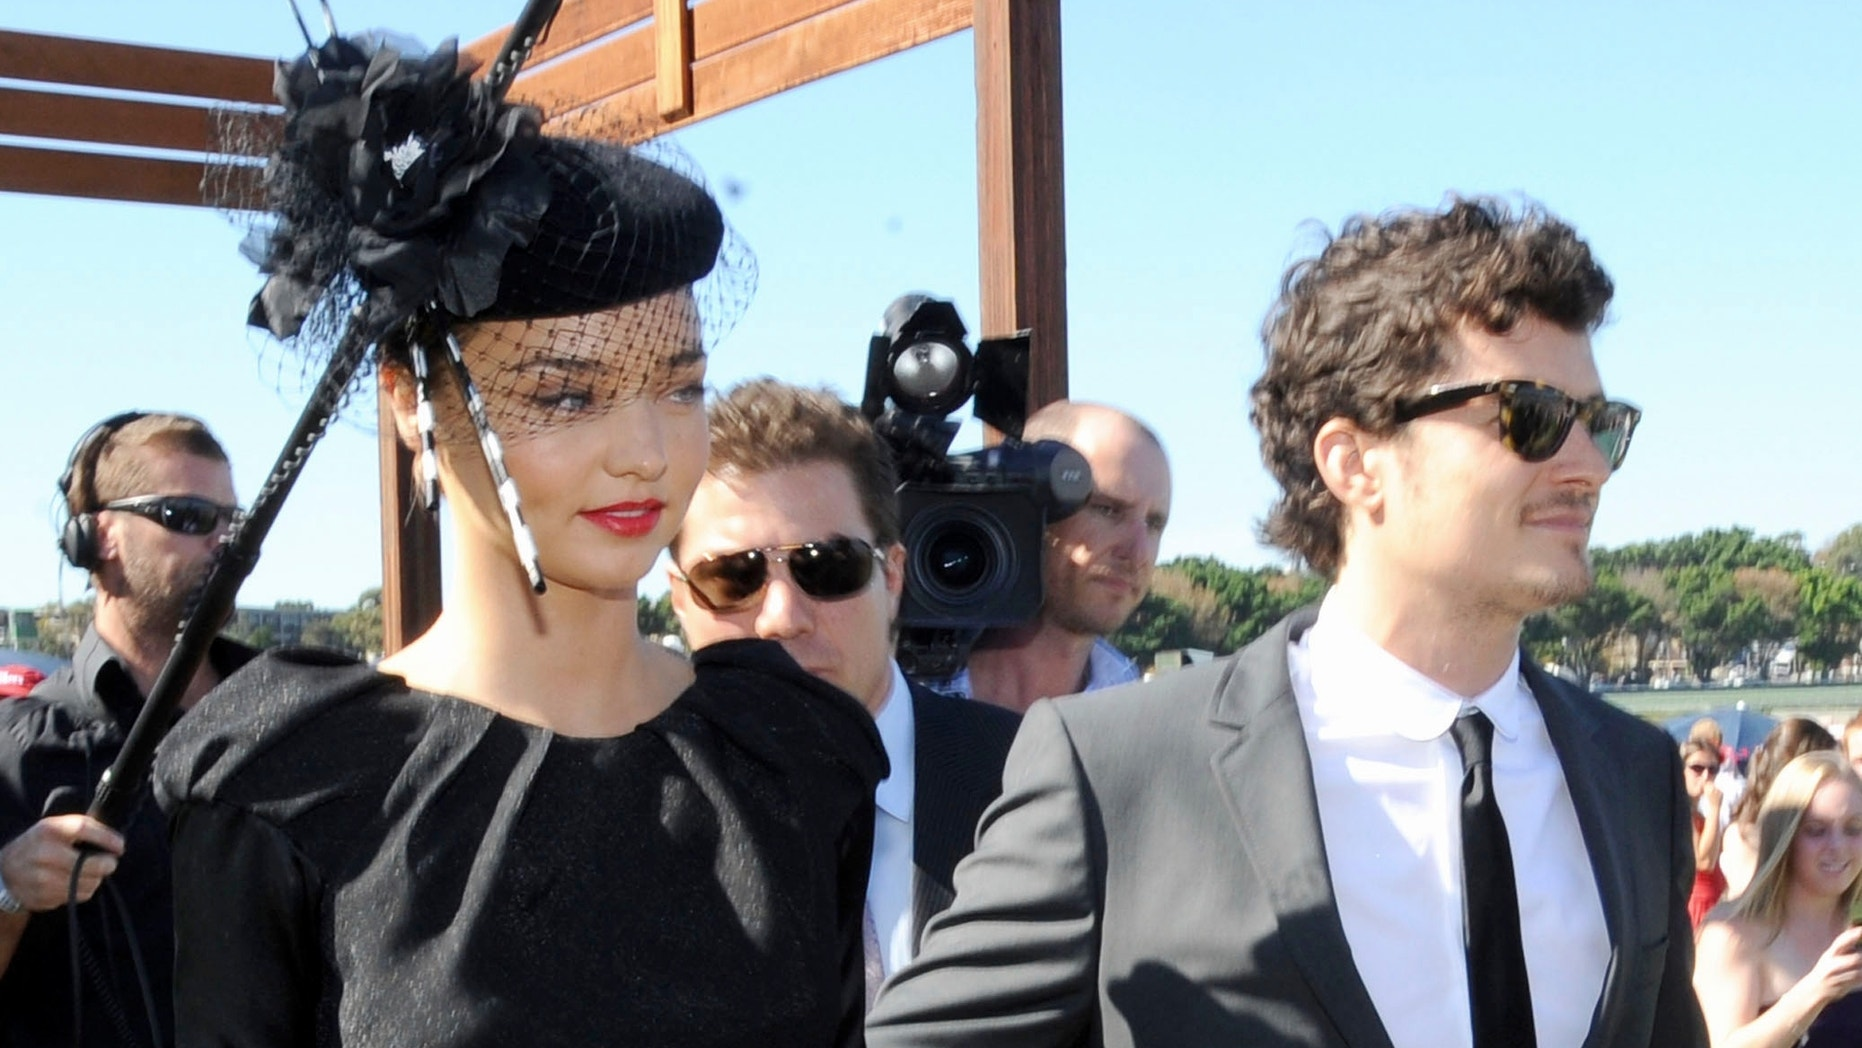 April 26, 2008: Actor Orlando Bloom and his then-girlfriend, Australian actress and top model Miranda Kerr, arrive for Doncaster Day at the Royal Randwick Racecourse in Sydney. The pair were recently wed in a ceremony from which most of Miranda's family was excluded.